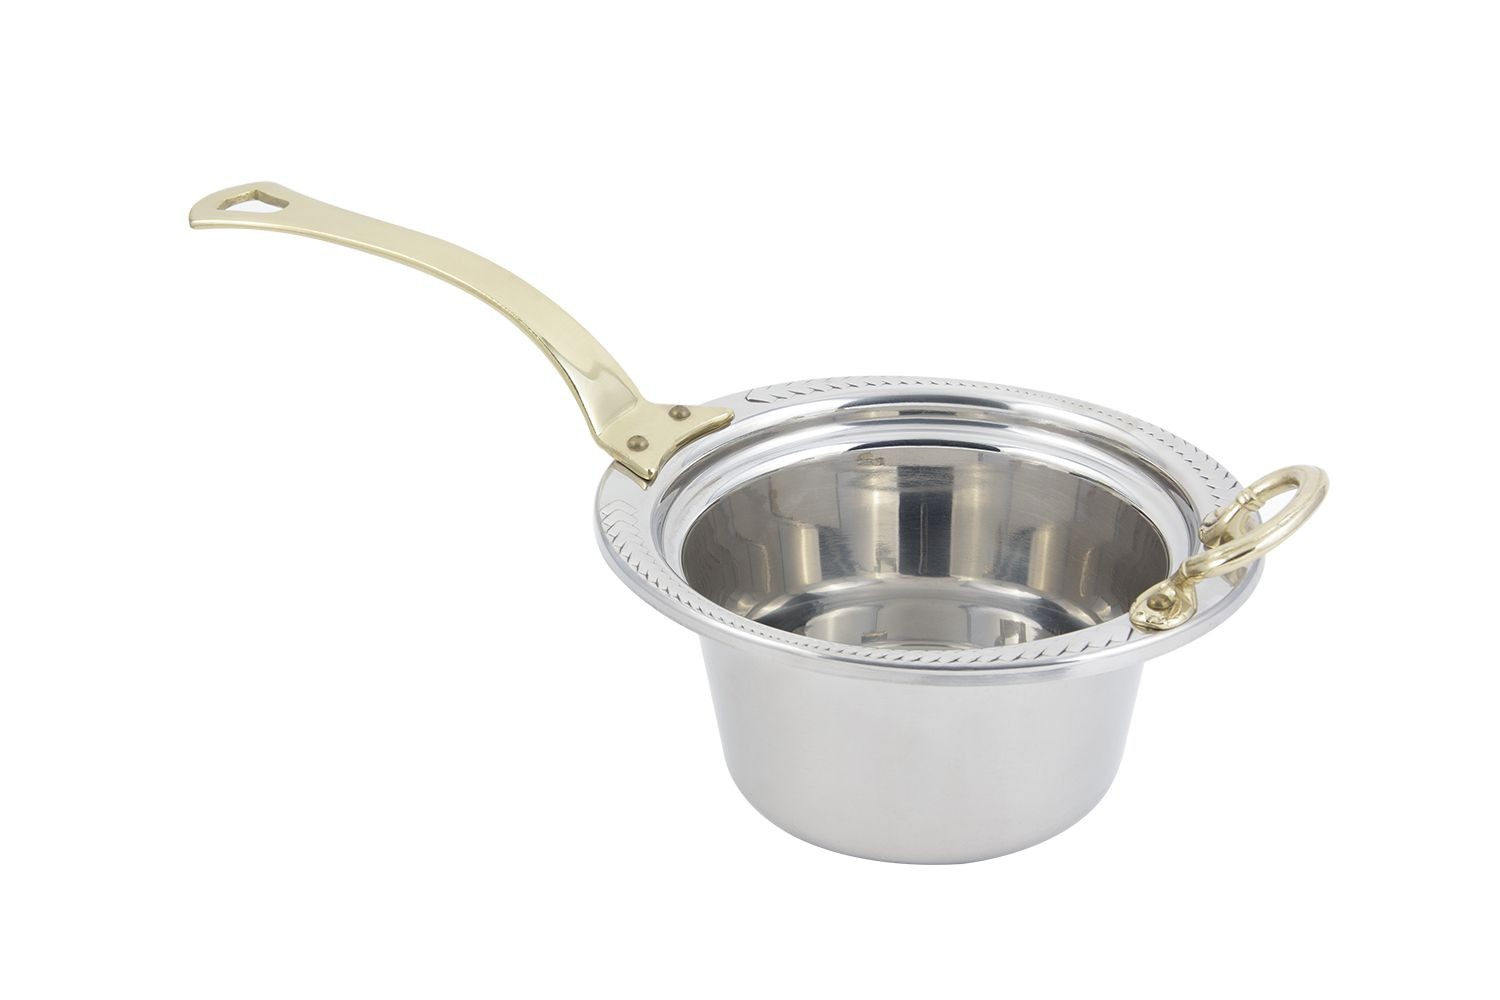 Bon Chef 5450HL Laurel Design Casserole Dish with Long Brass Handle, 2 Qt.